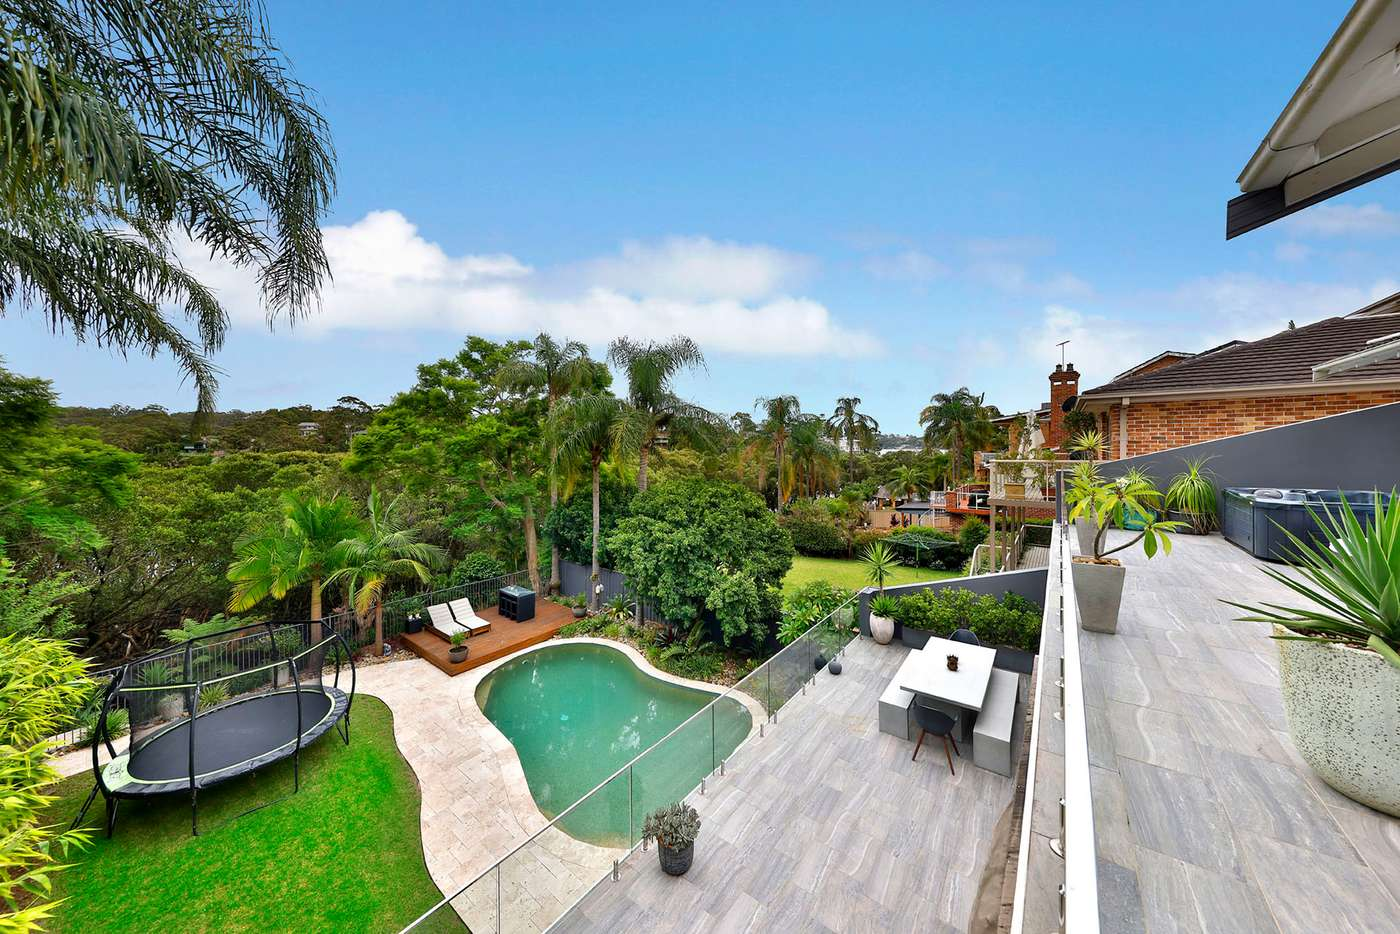 Fifth view of Homely house listing, 22 Ingrid Road, Kareela NSW 2232